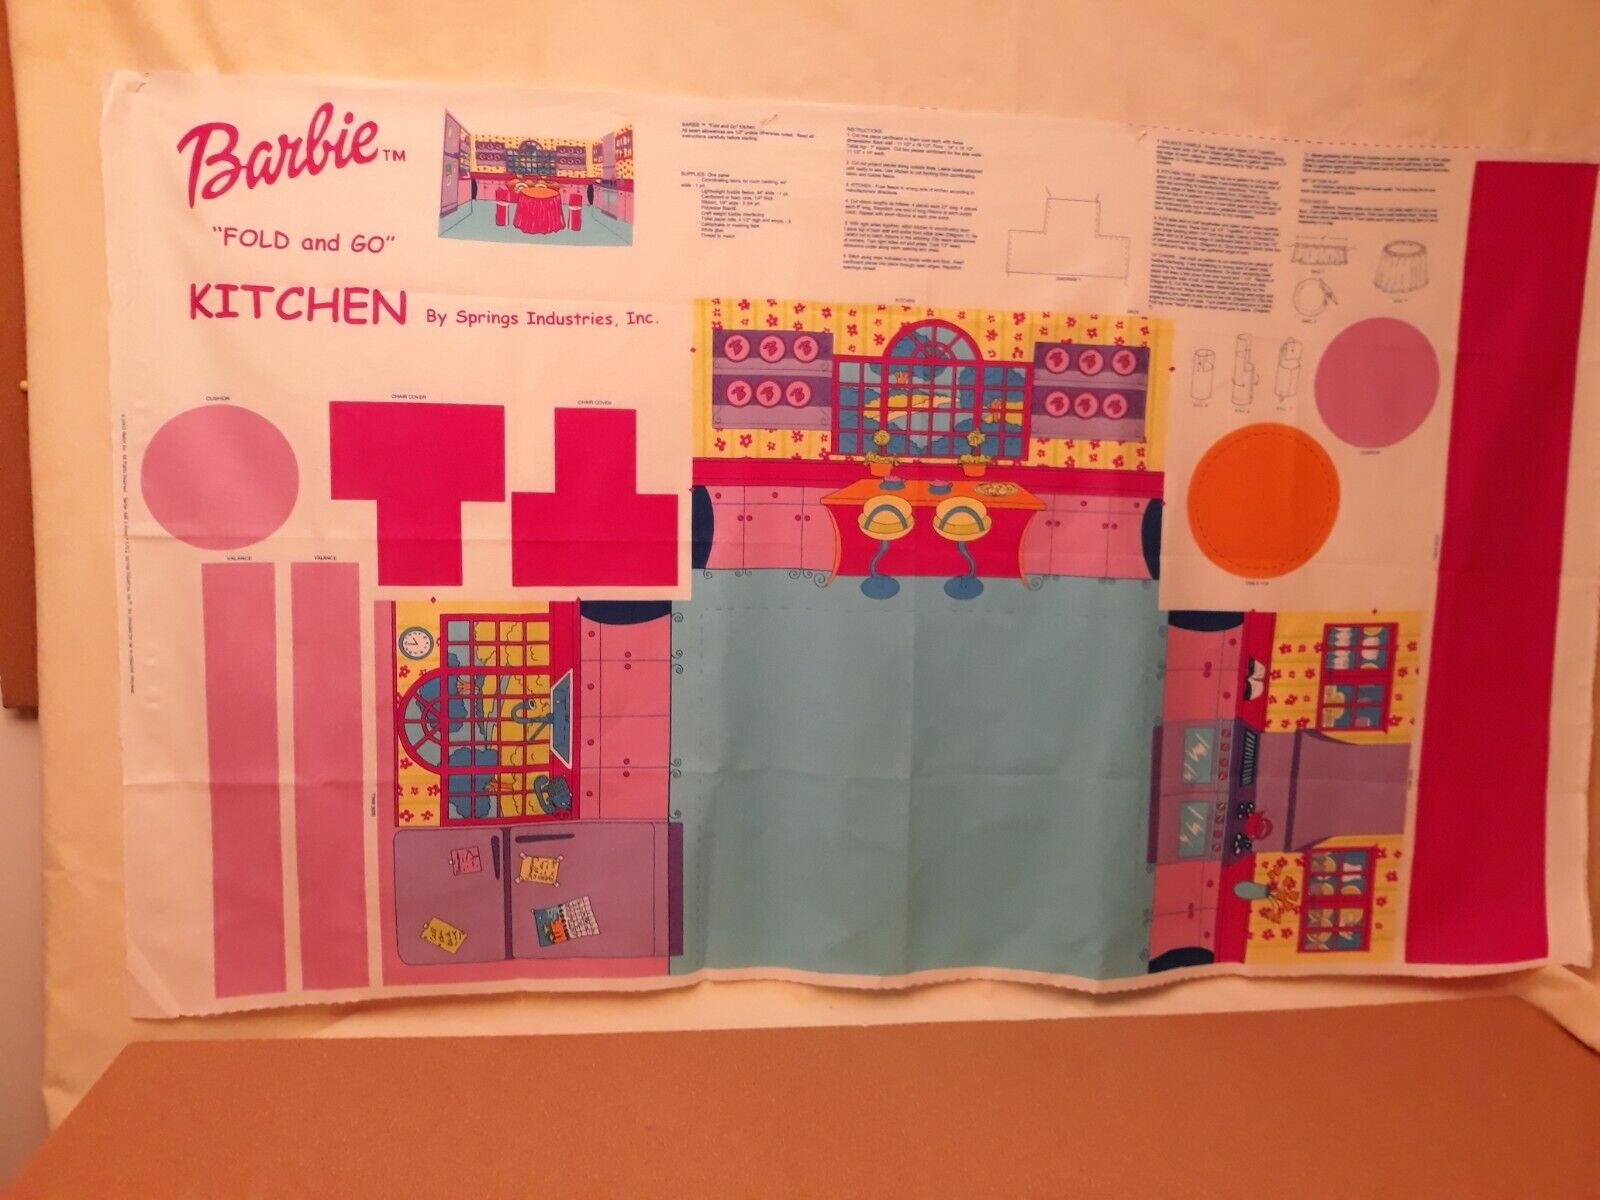 Barbie Fold And Go - Bedroom Bathroom Or Kitchen Cotton Panel By Springs Fabrics - $5.99